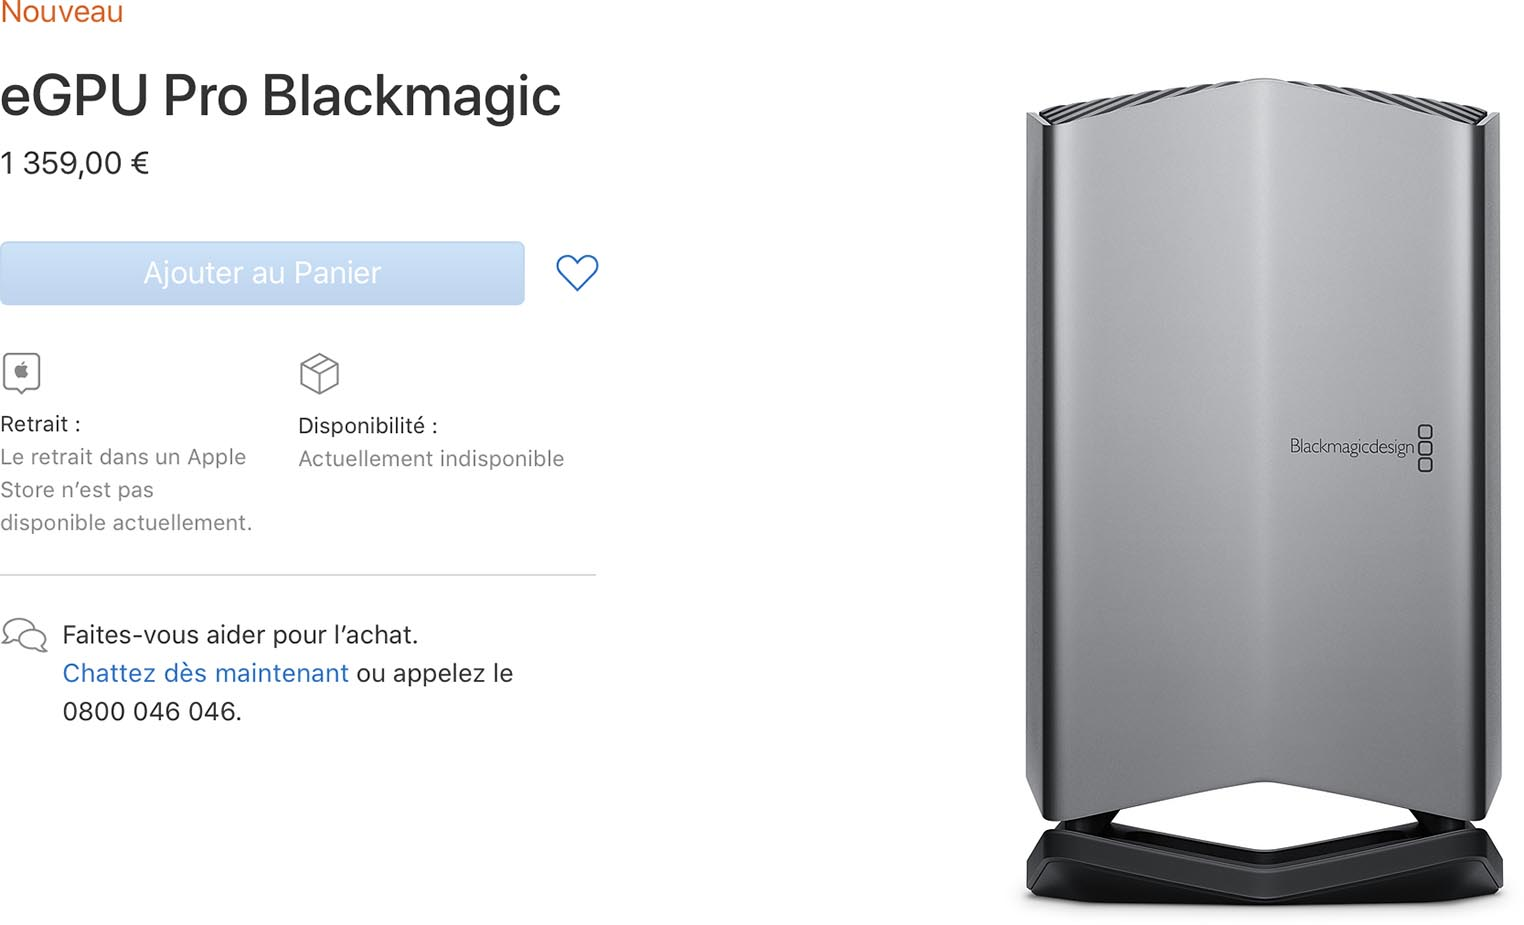 eGPU Pro Blackmagic Apple Store